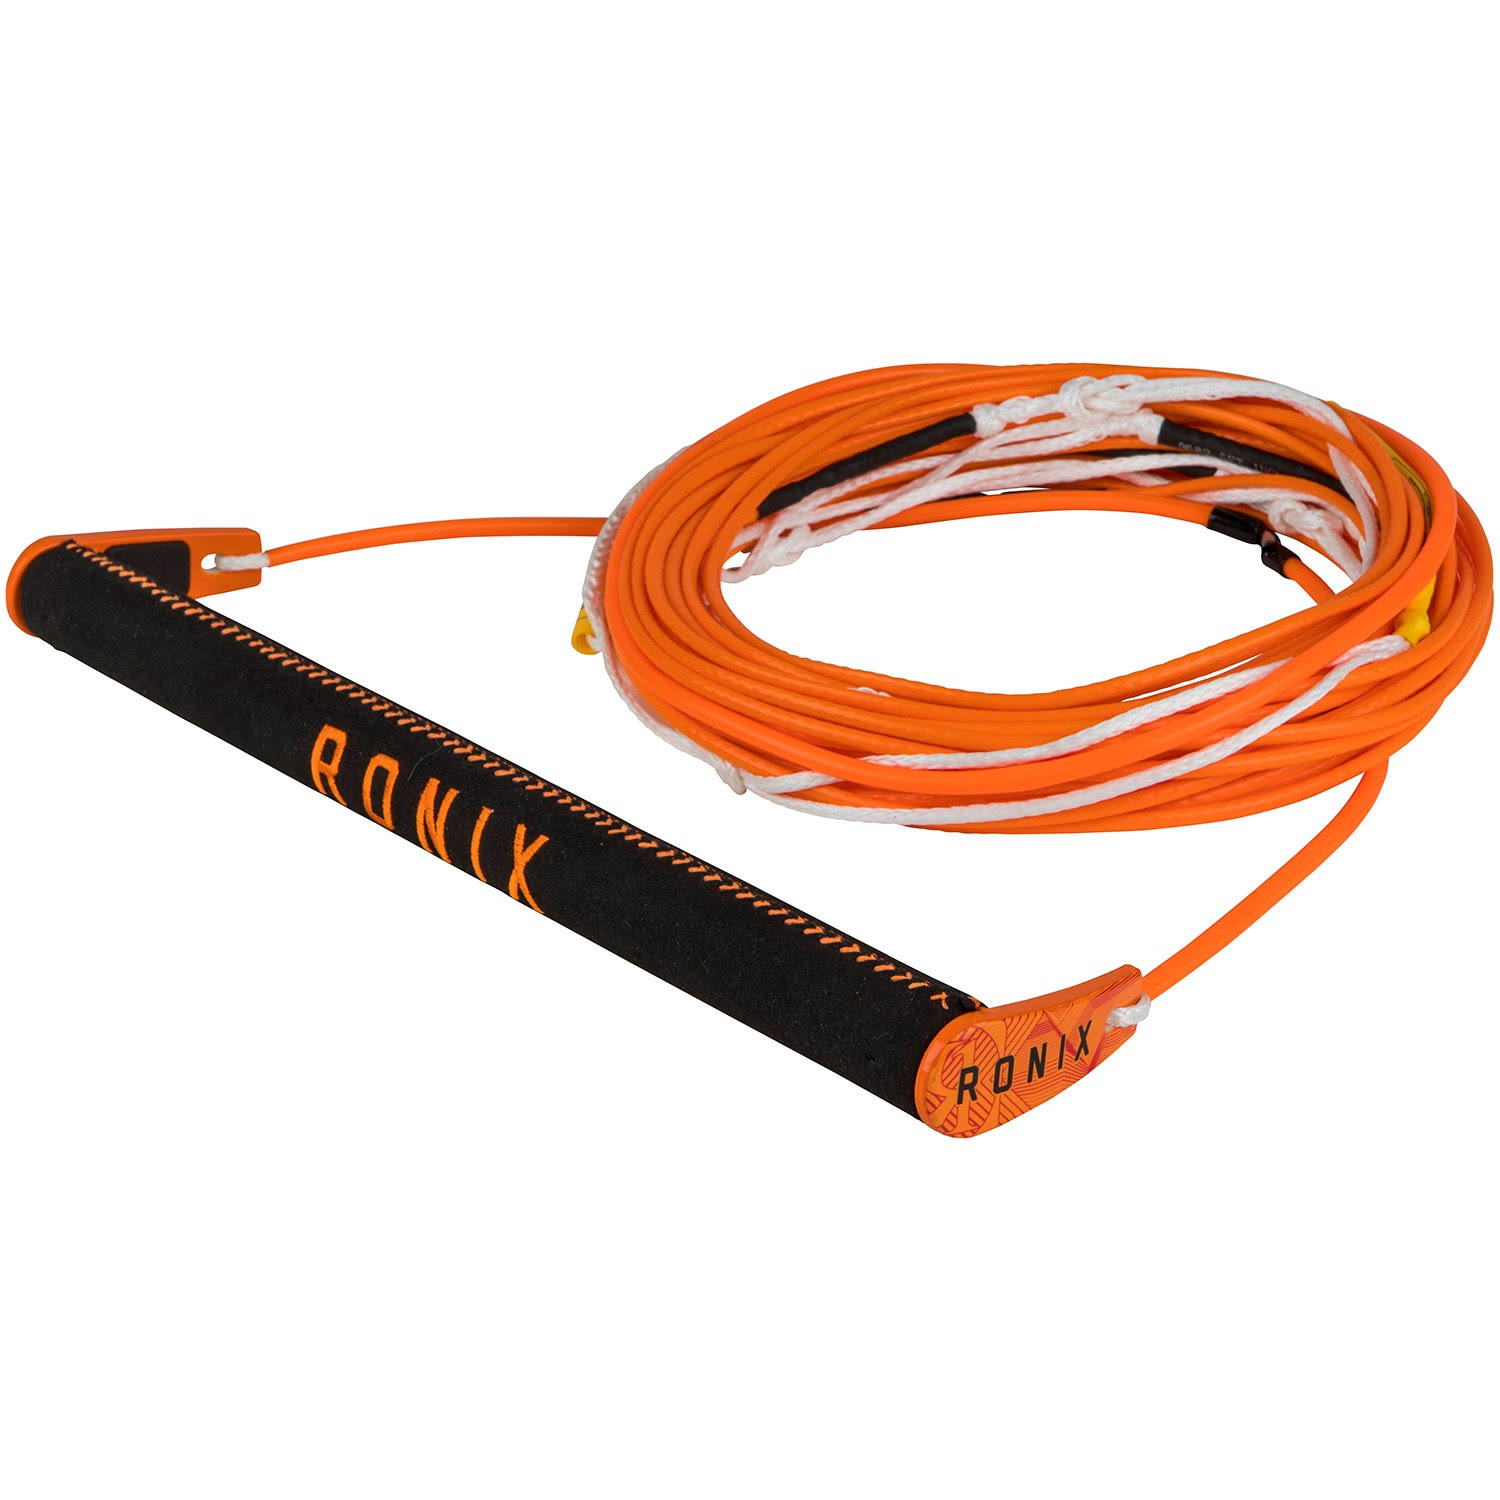 Ronix Combo 6.0 Rope